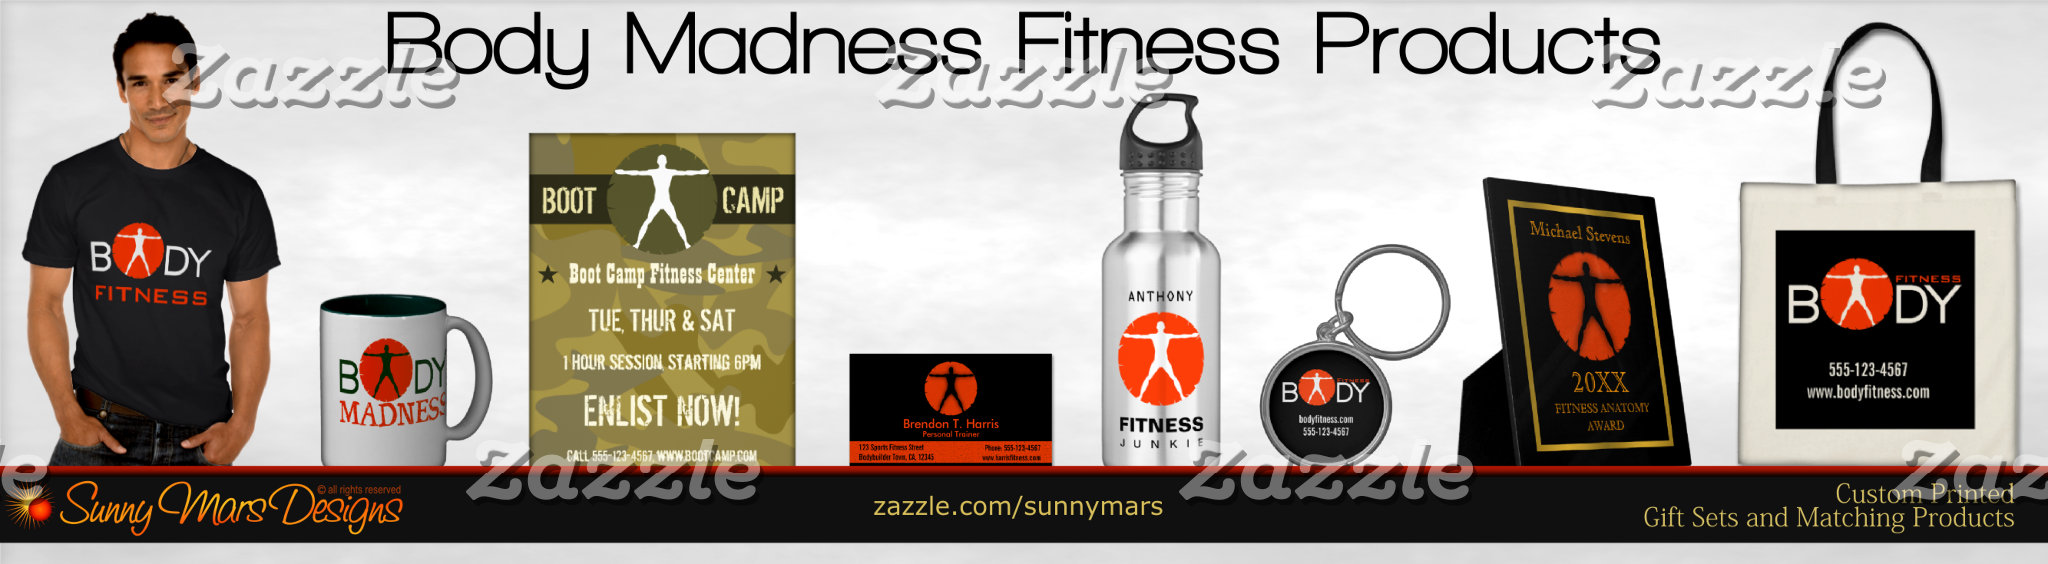 Body Madness Gym Junkie Personal Trainer, Bodybuilding, Fitness Instructor Product Set Collection